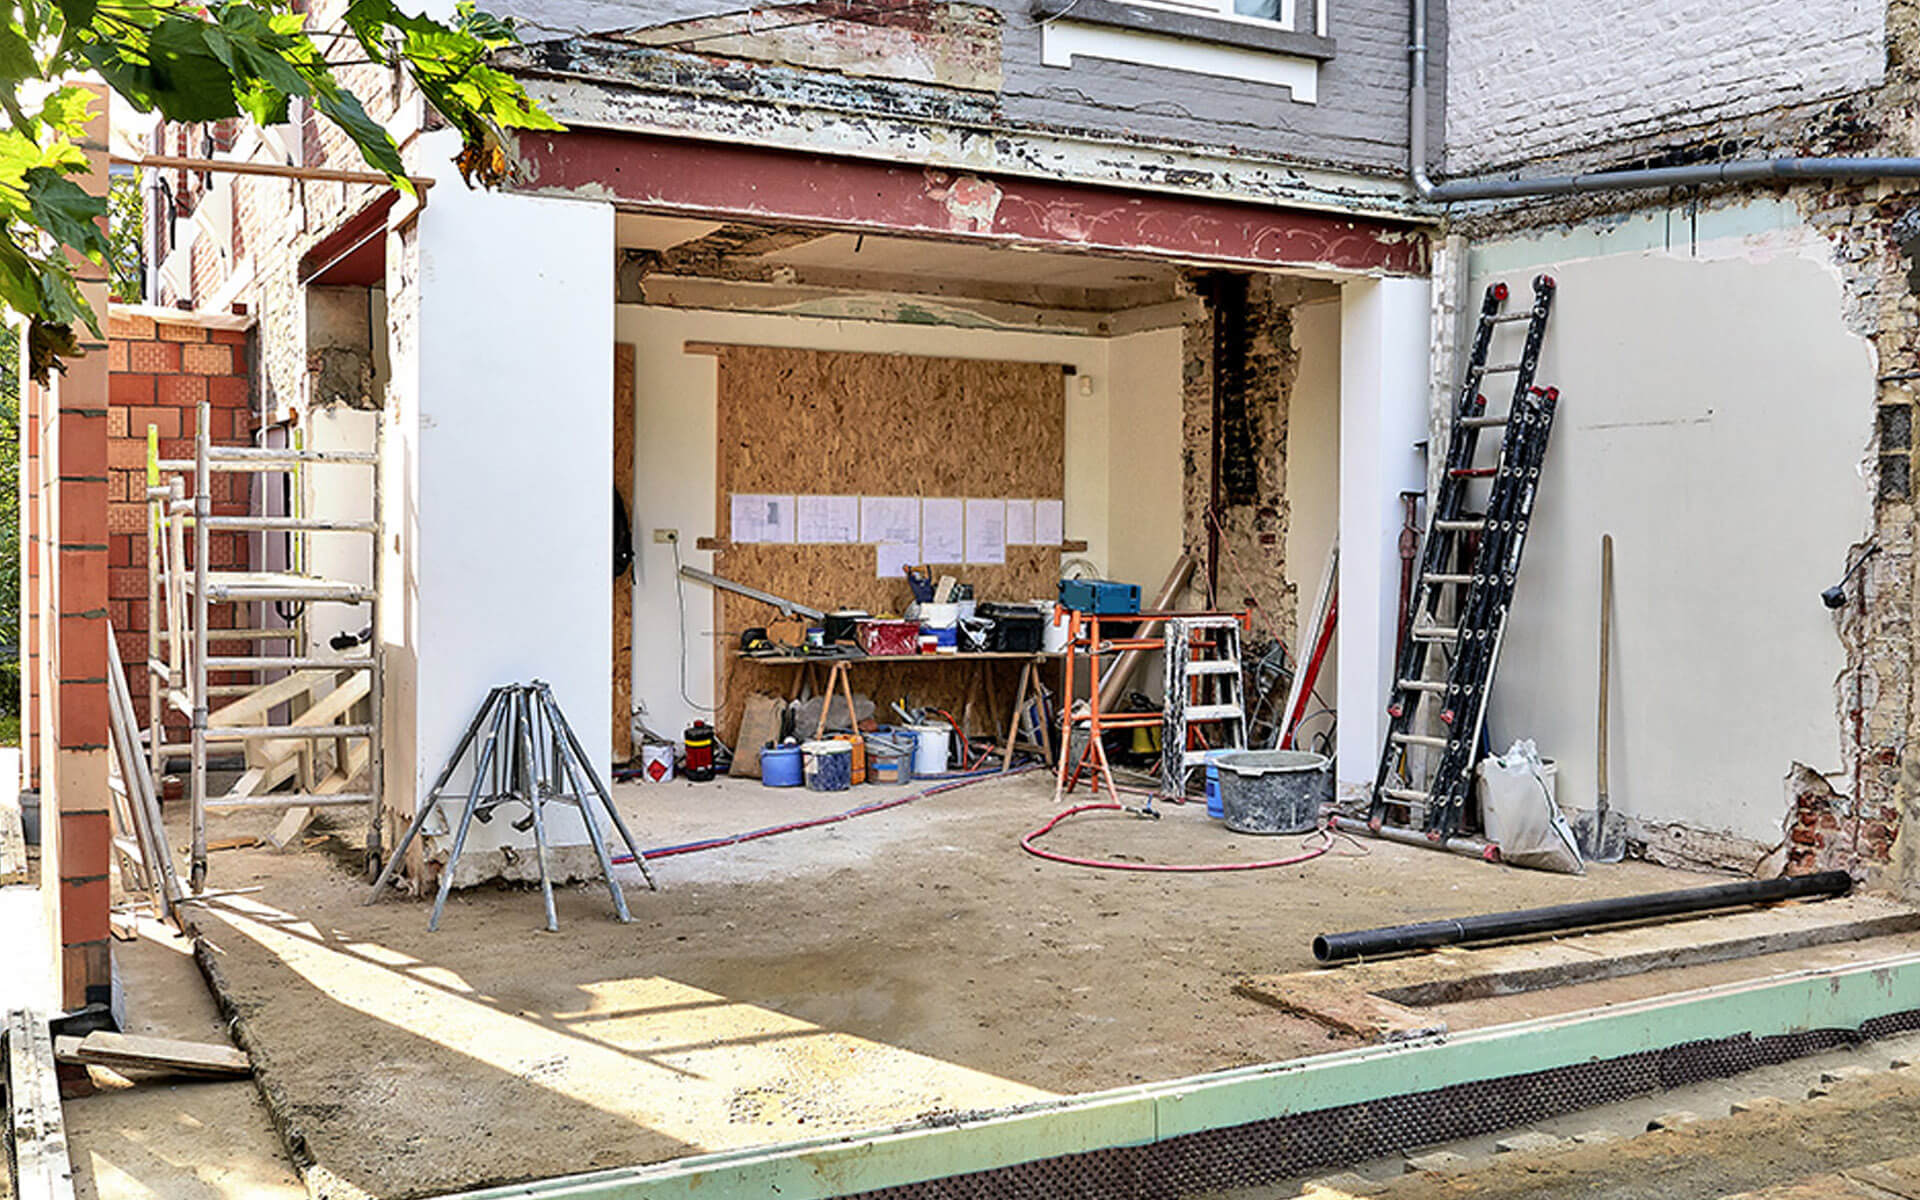 architect to get planning permission